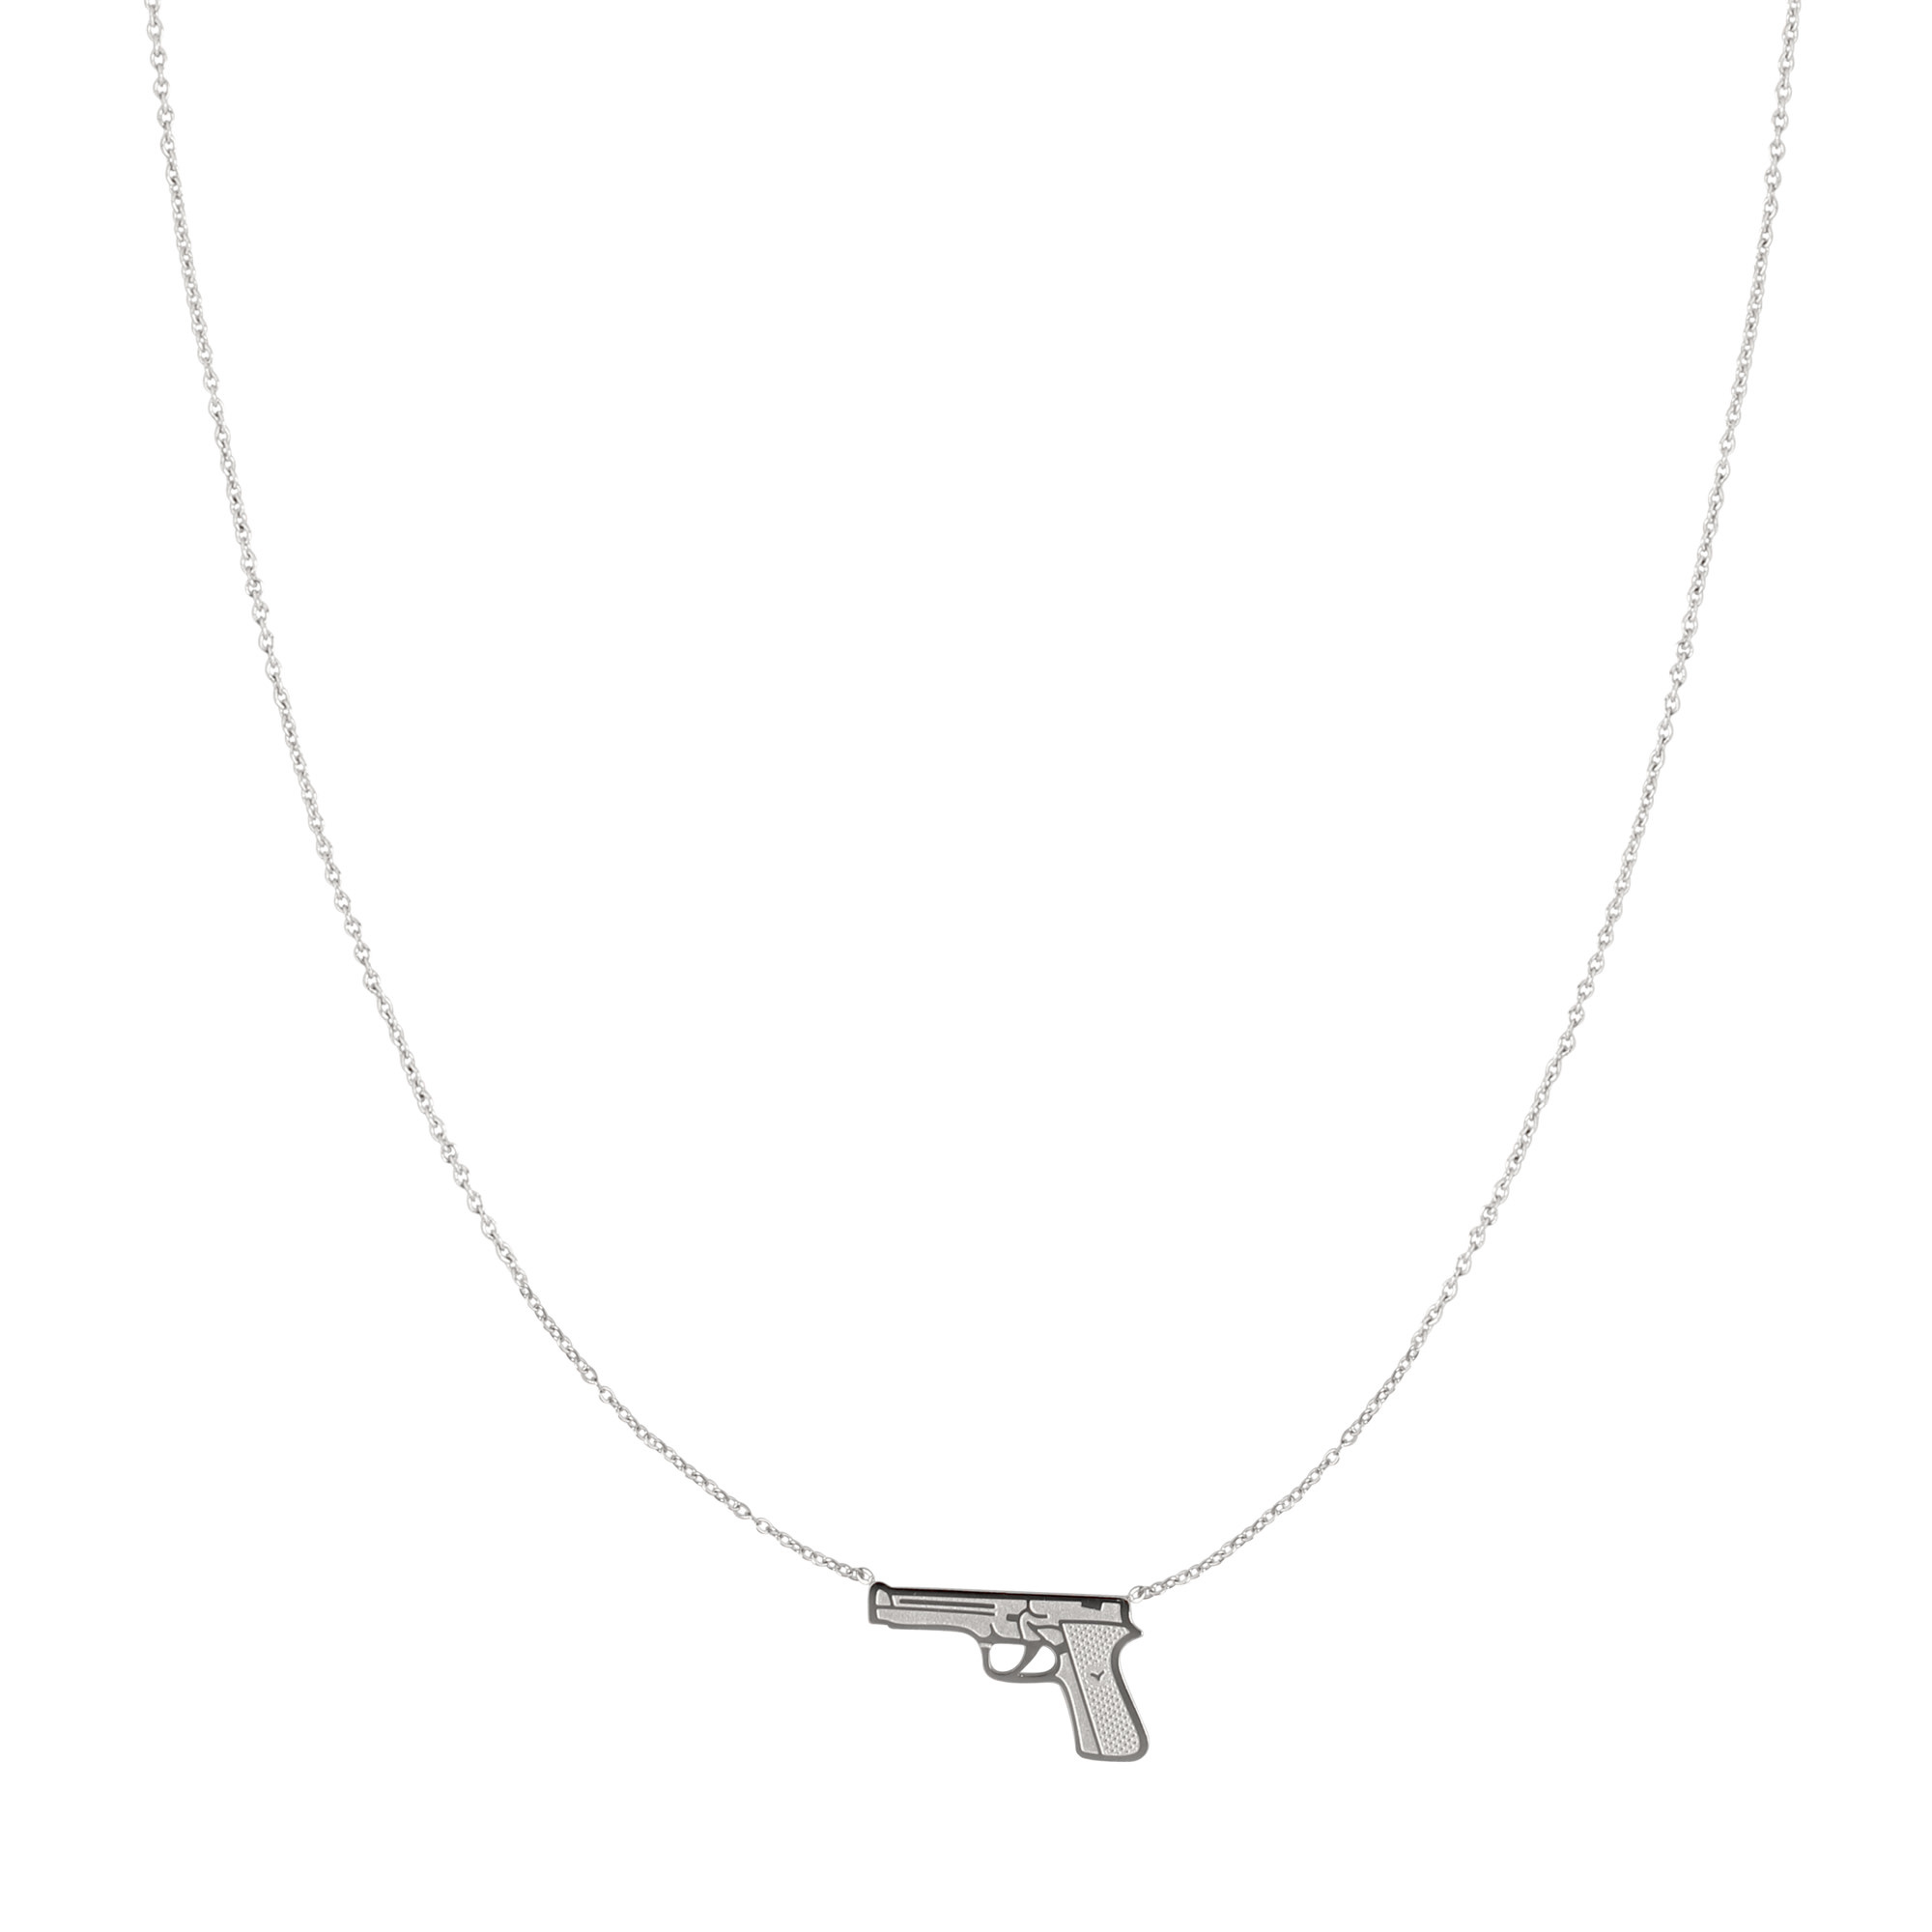 With love Necklace Dressed to kill silver